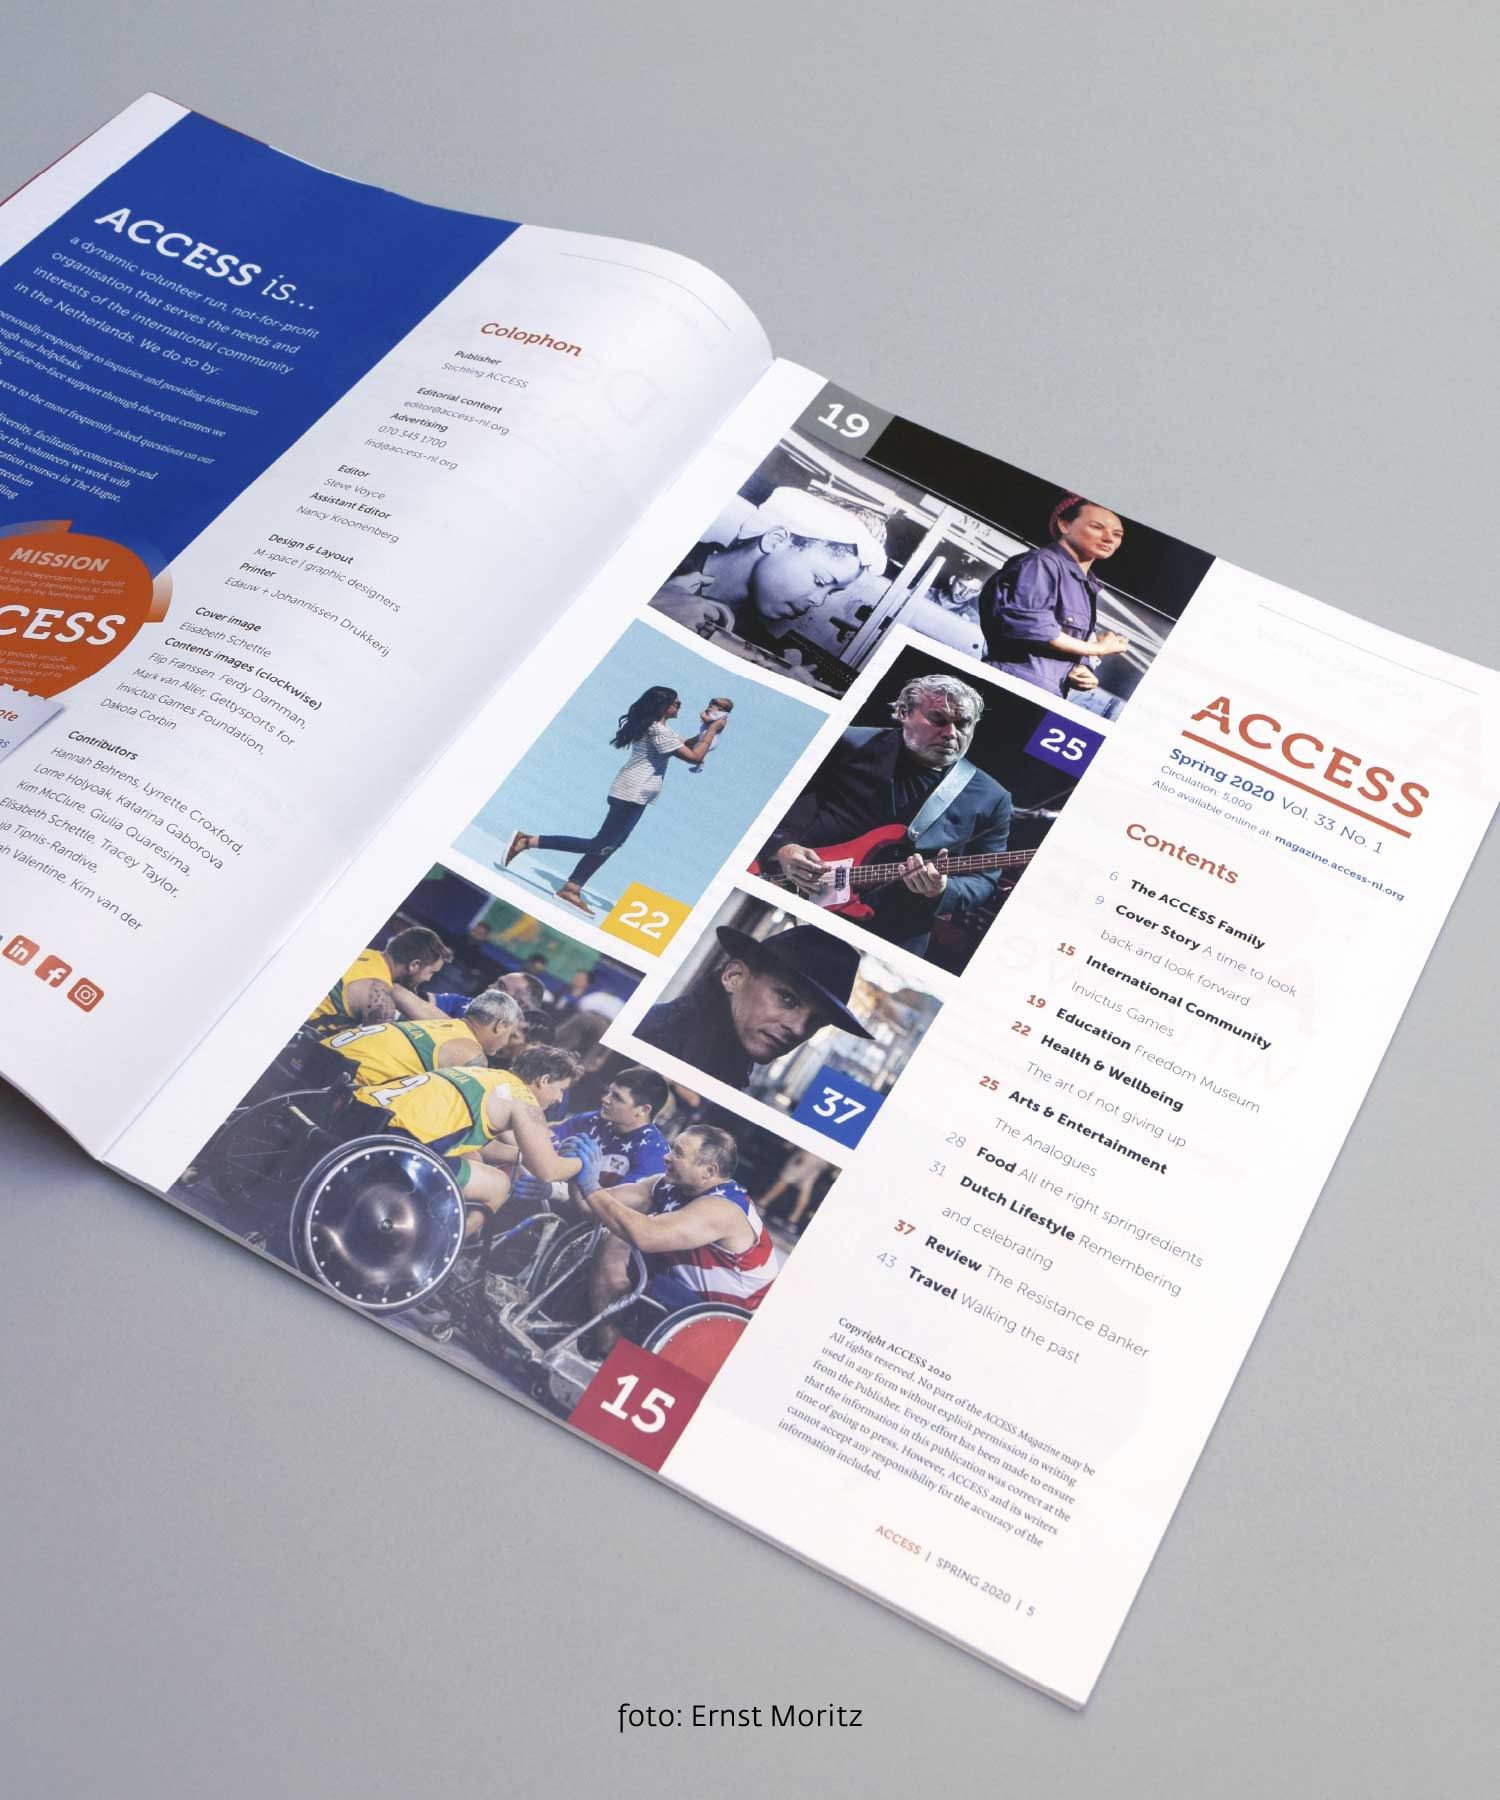 ACCESS magazine content M-space